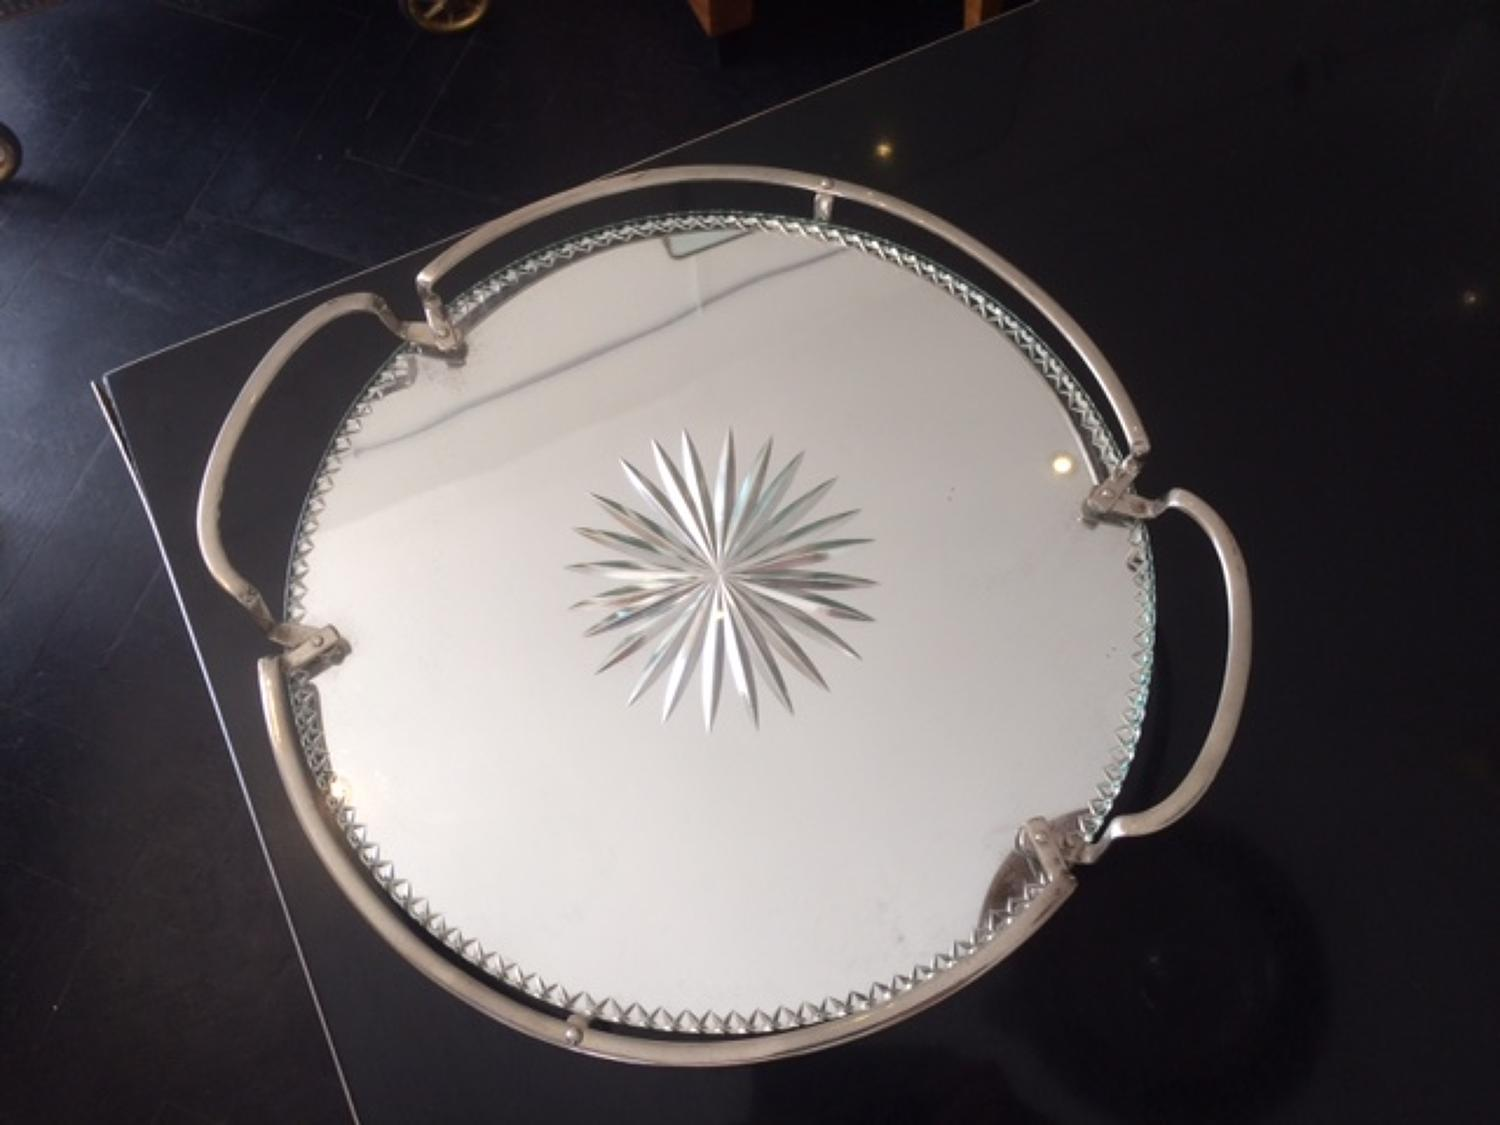 Mirrored round tray